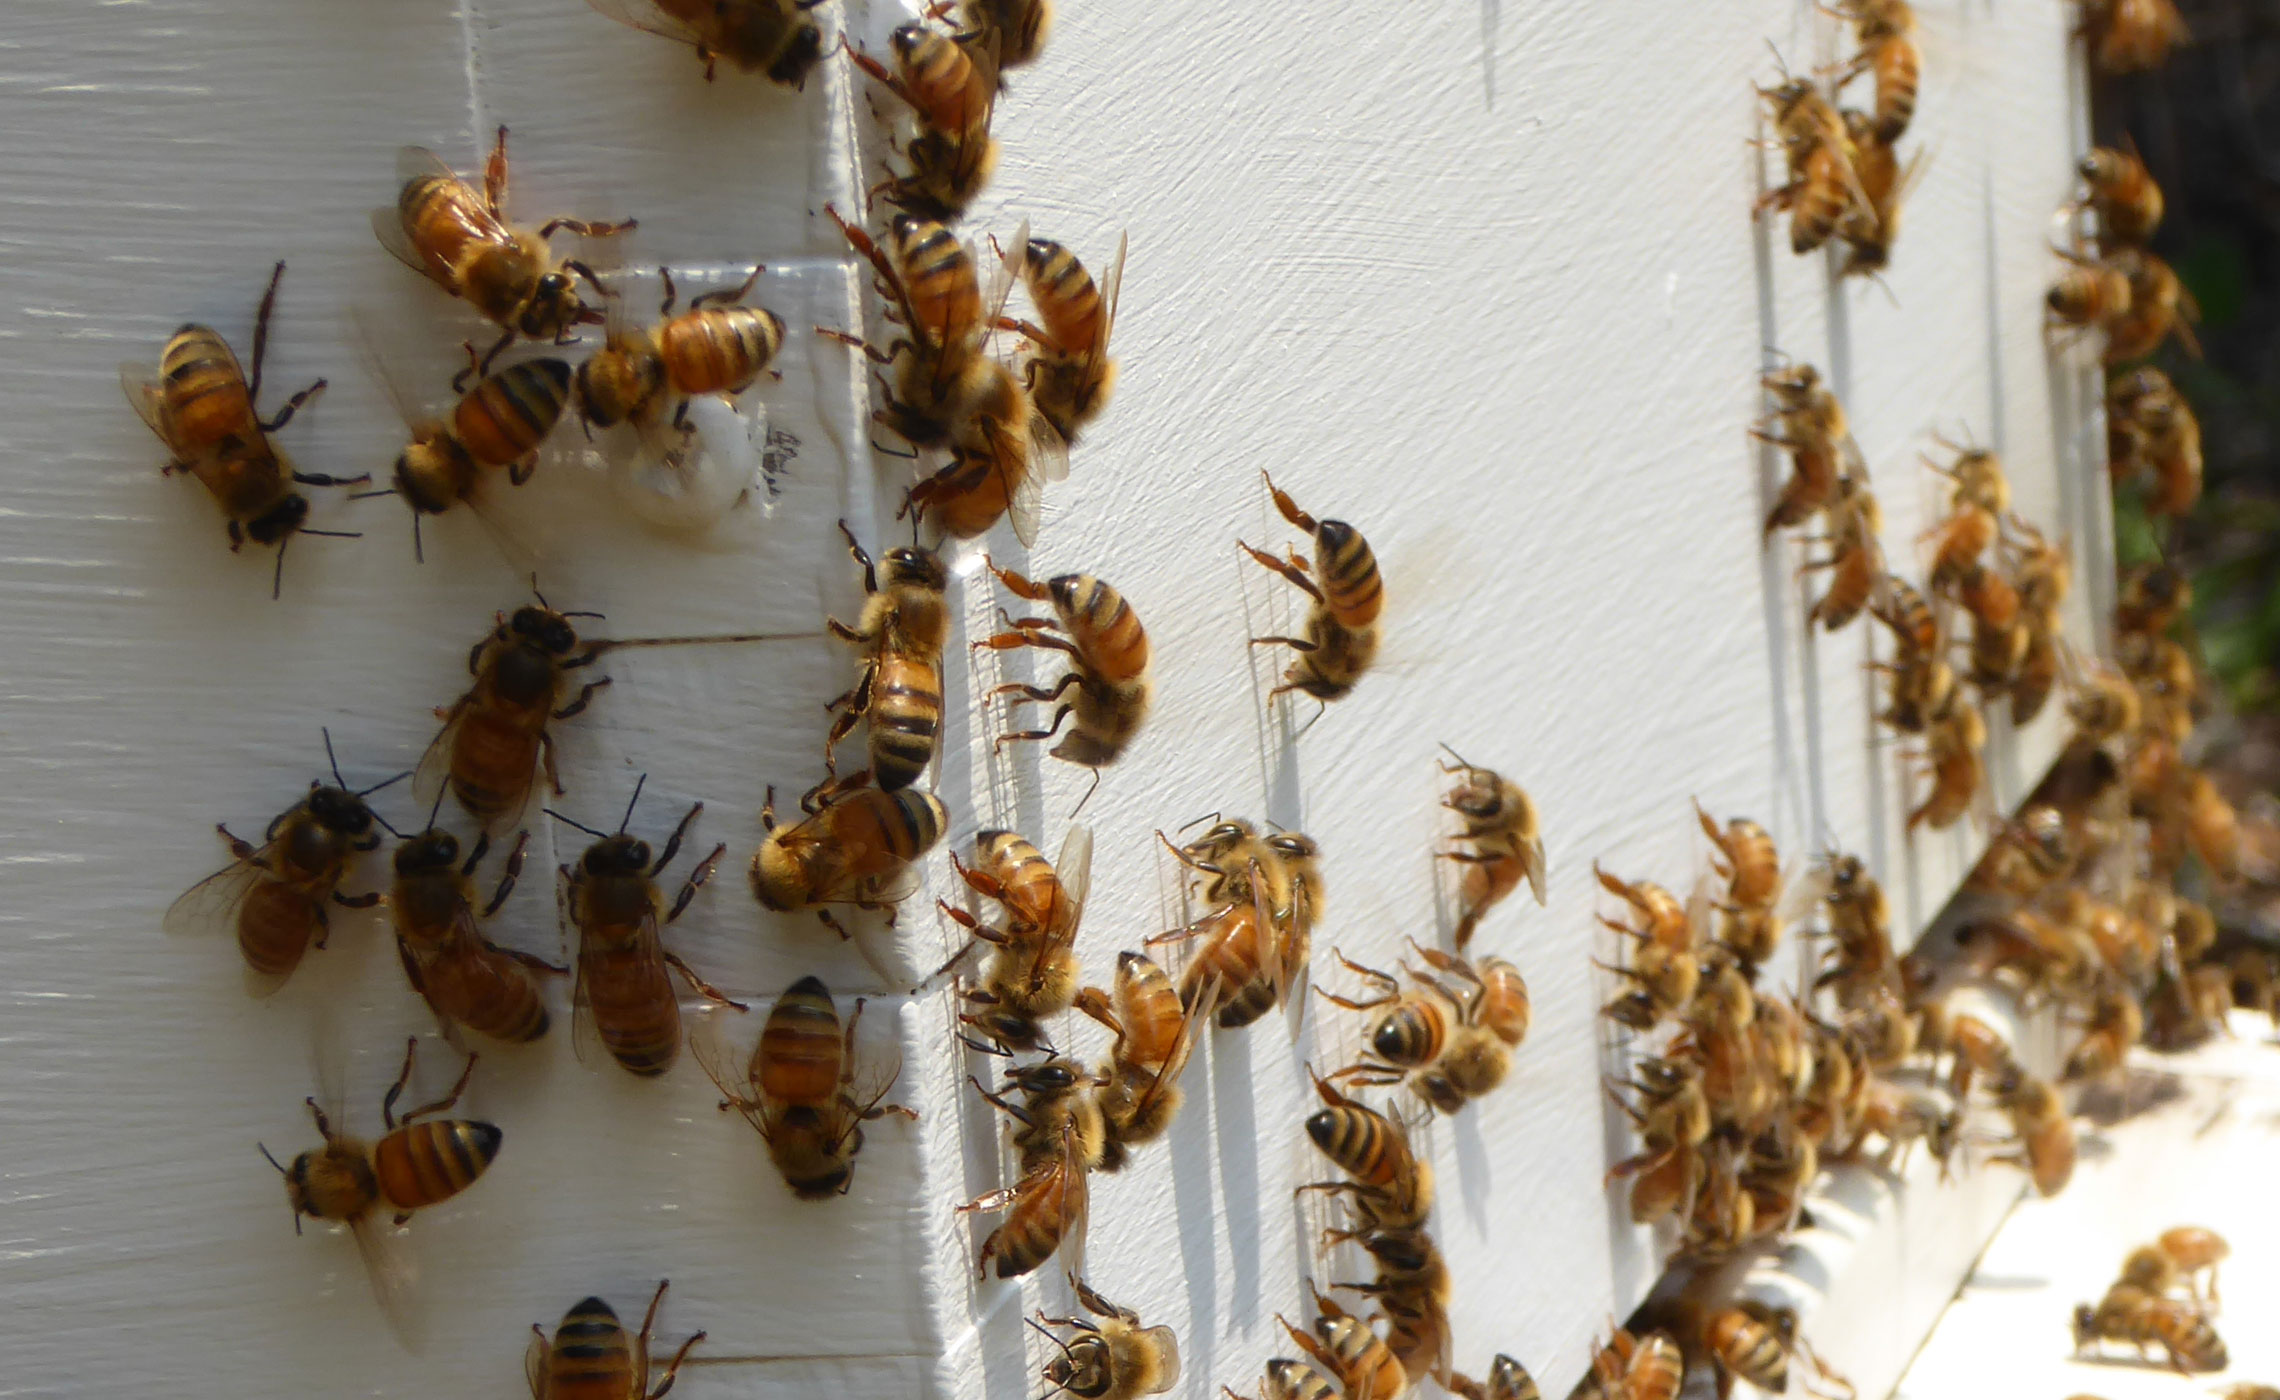 Close up of Julia's bees